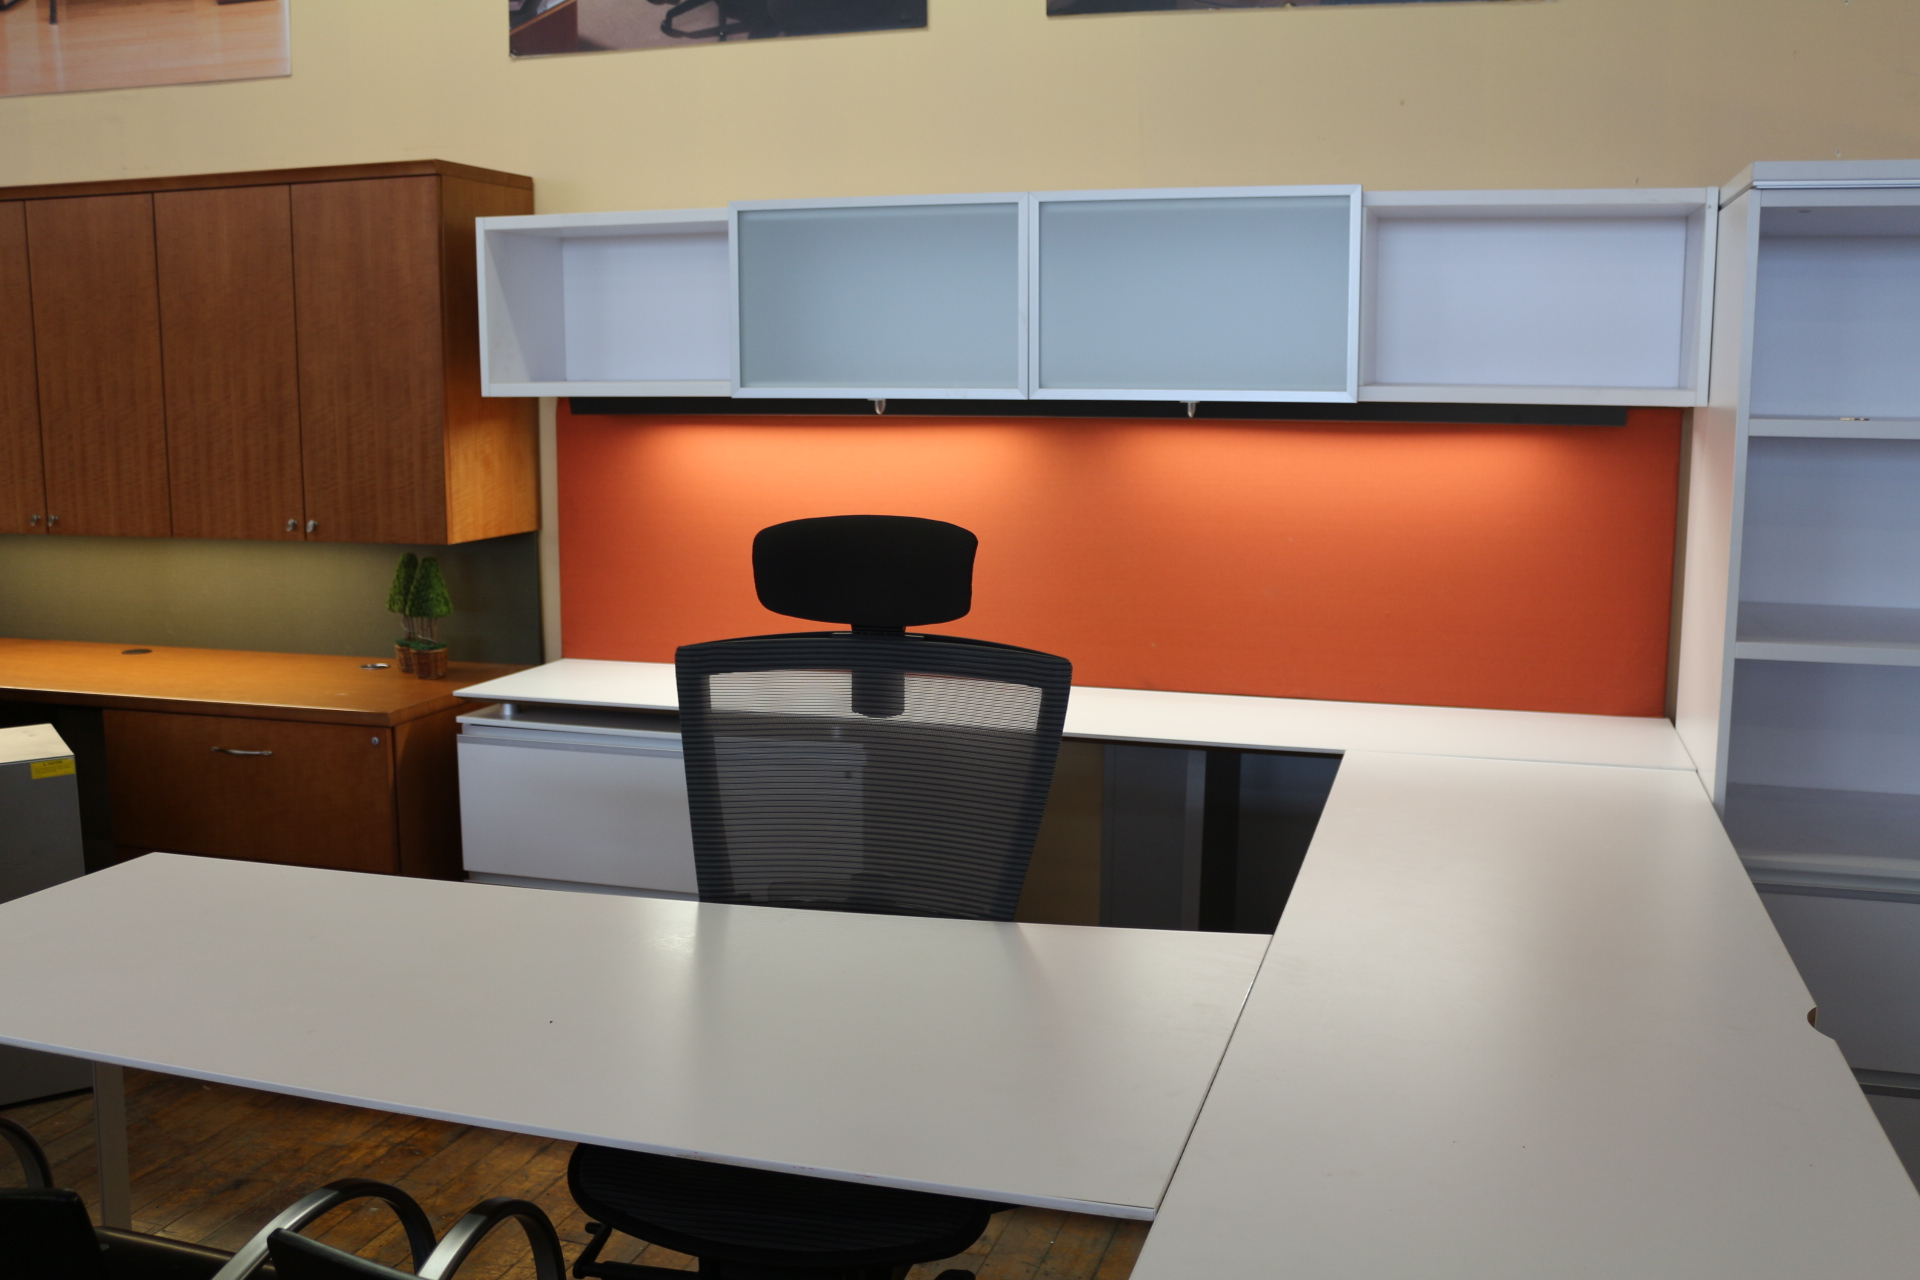 peartreeofficefurniture_peartreeofficefurniture_img_1085.jpg